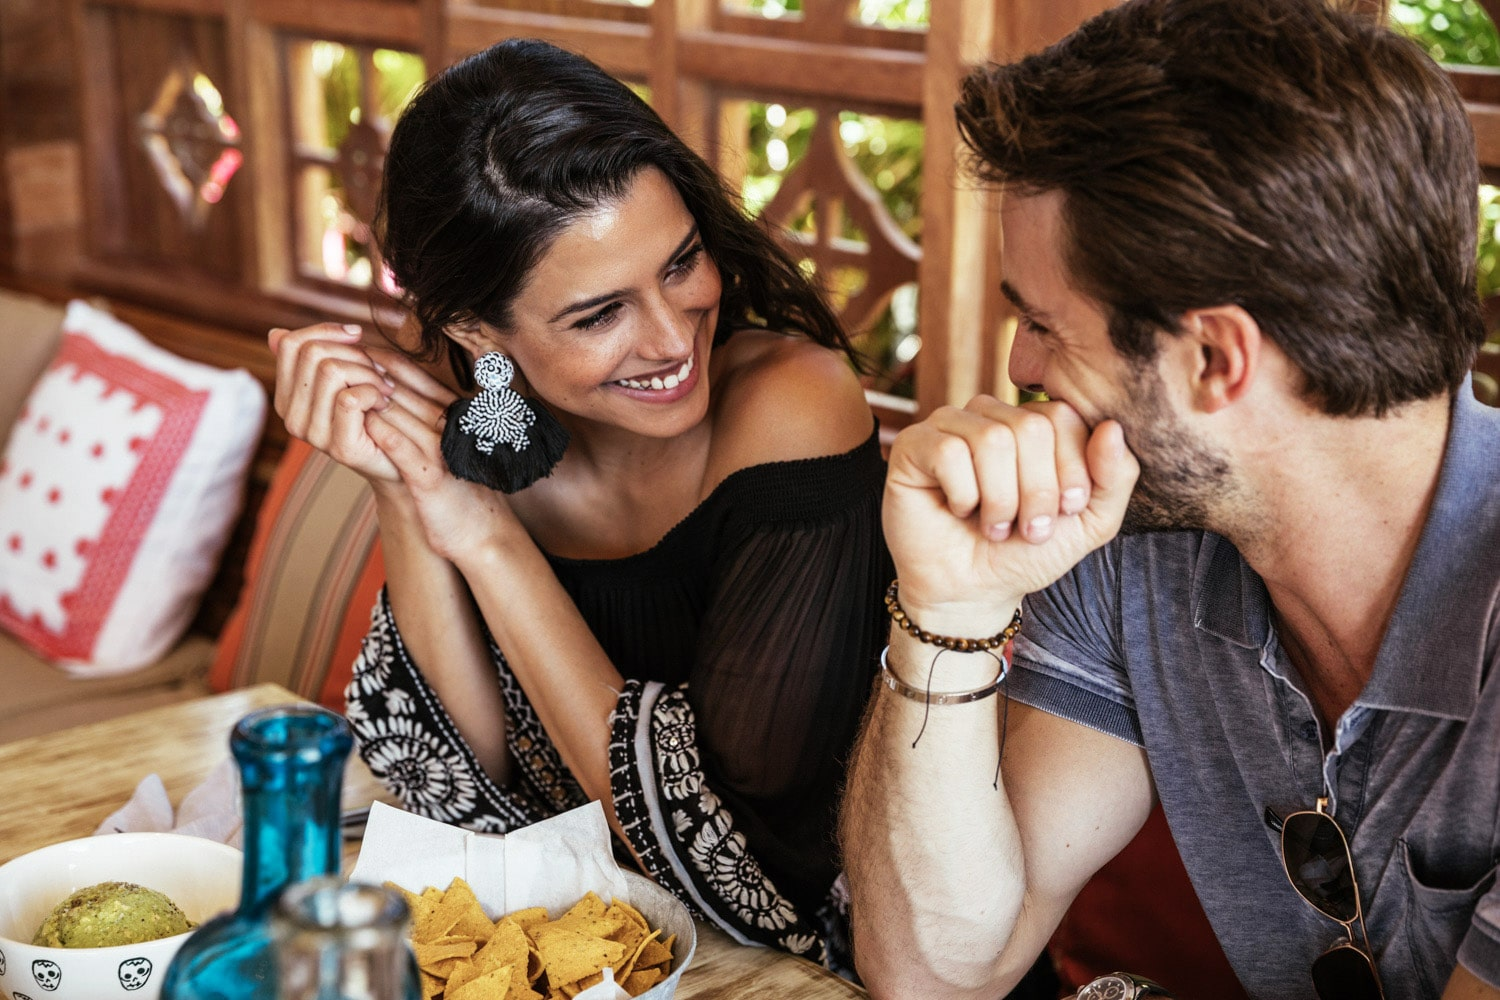 Dining with friends and family at Casa Calavera Los Cabos over authentic Mexican cuisine.